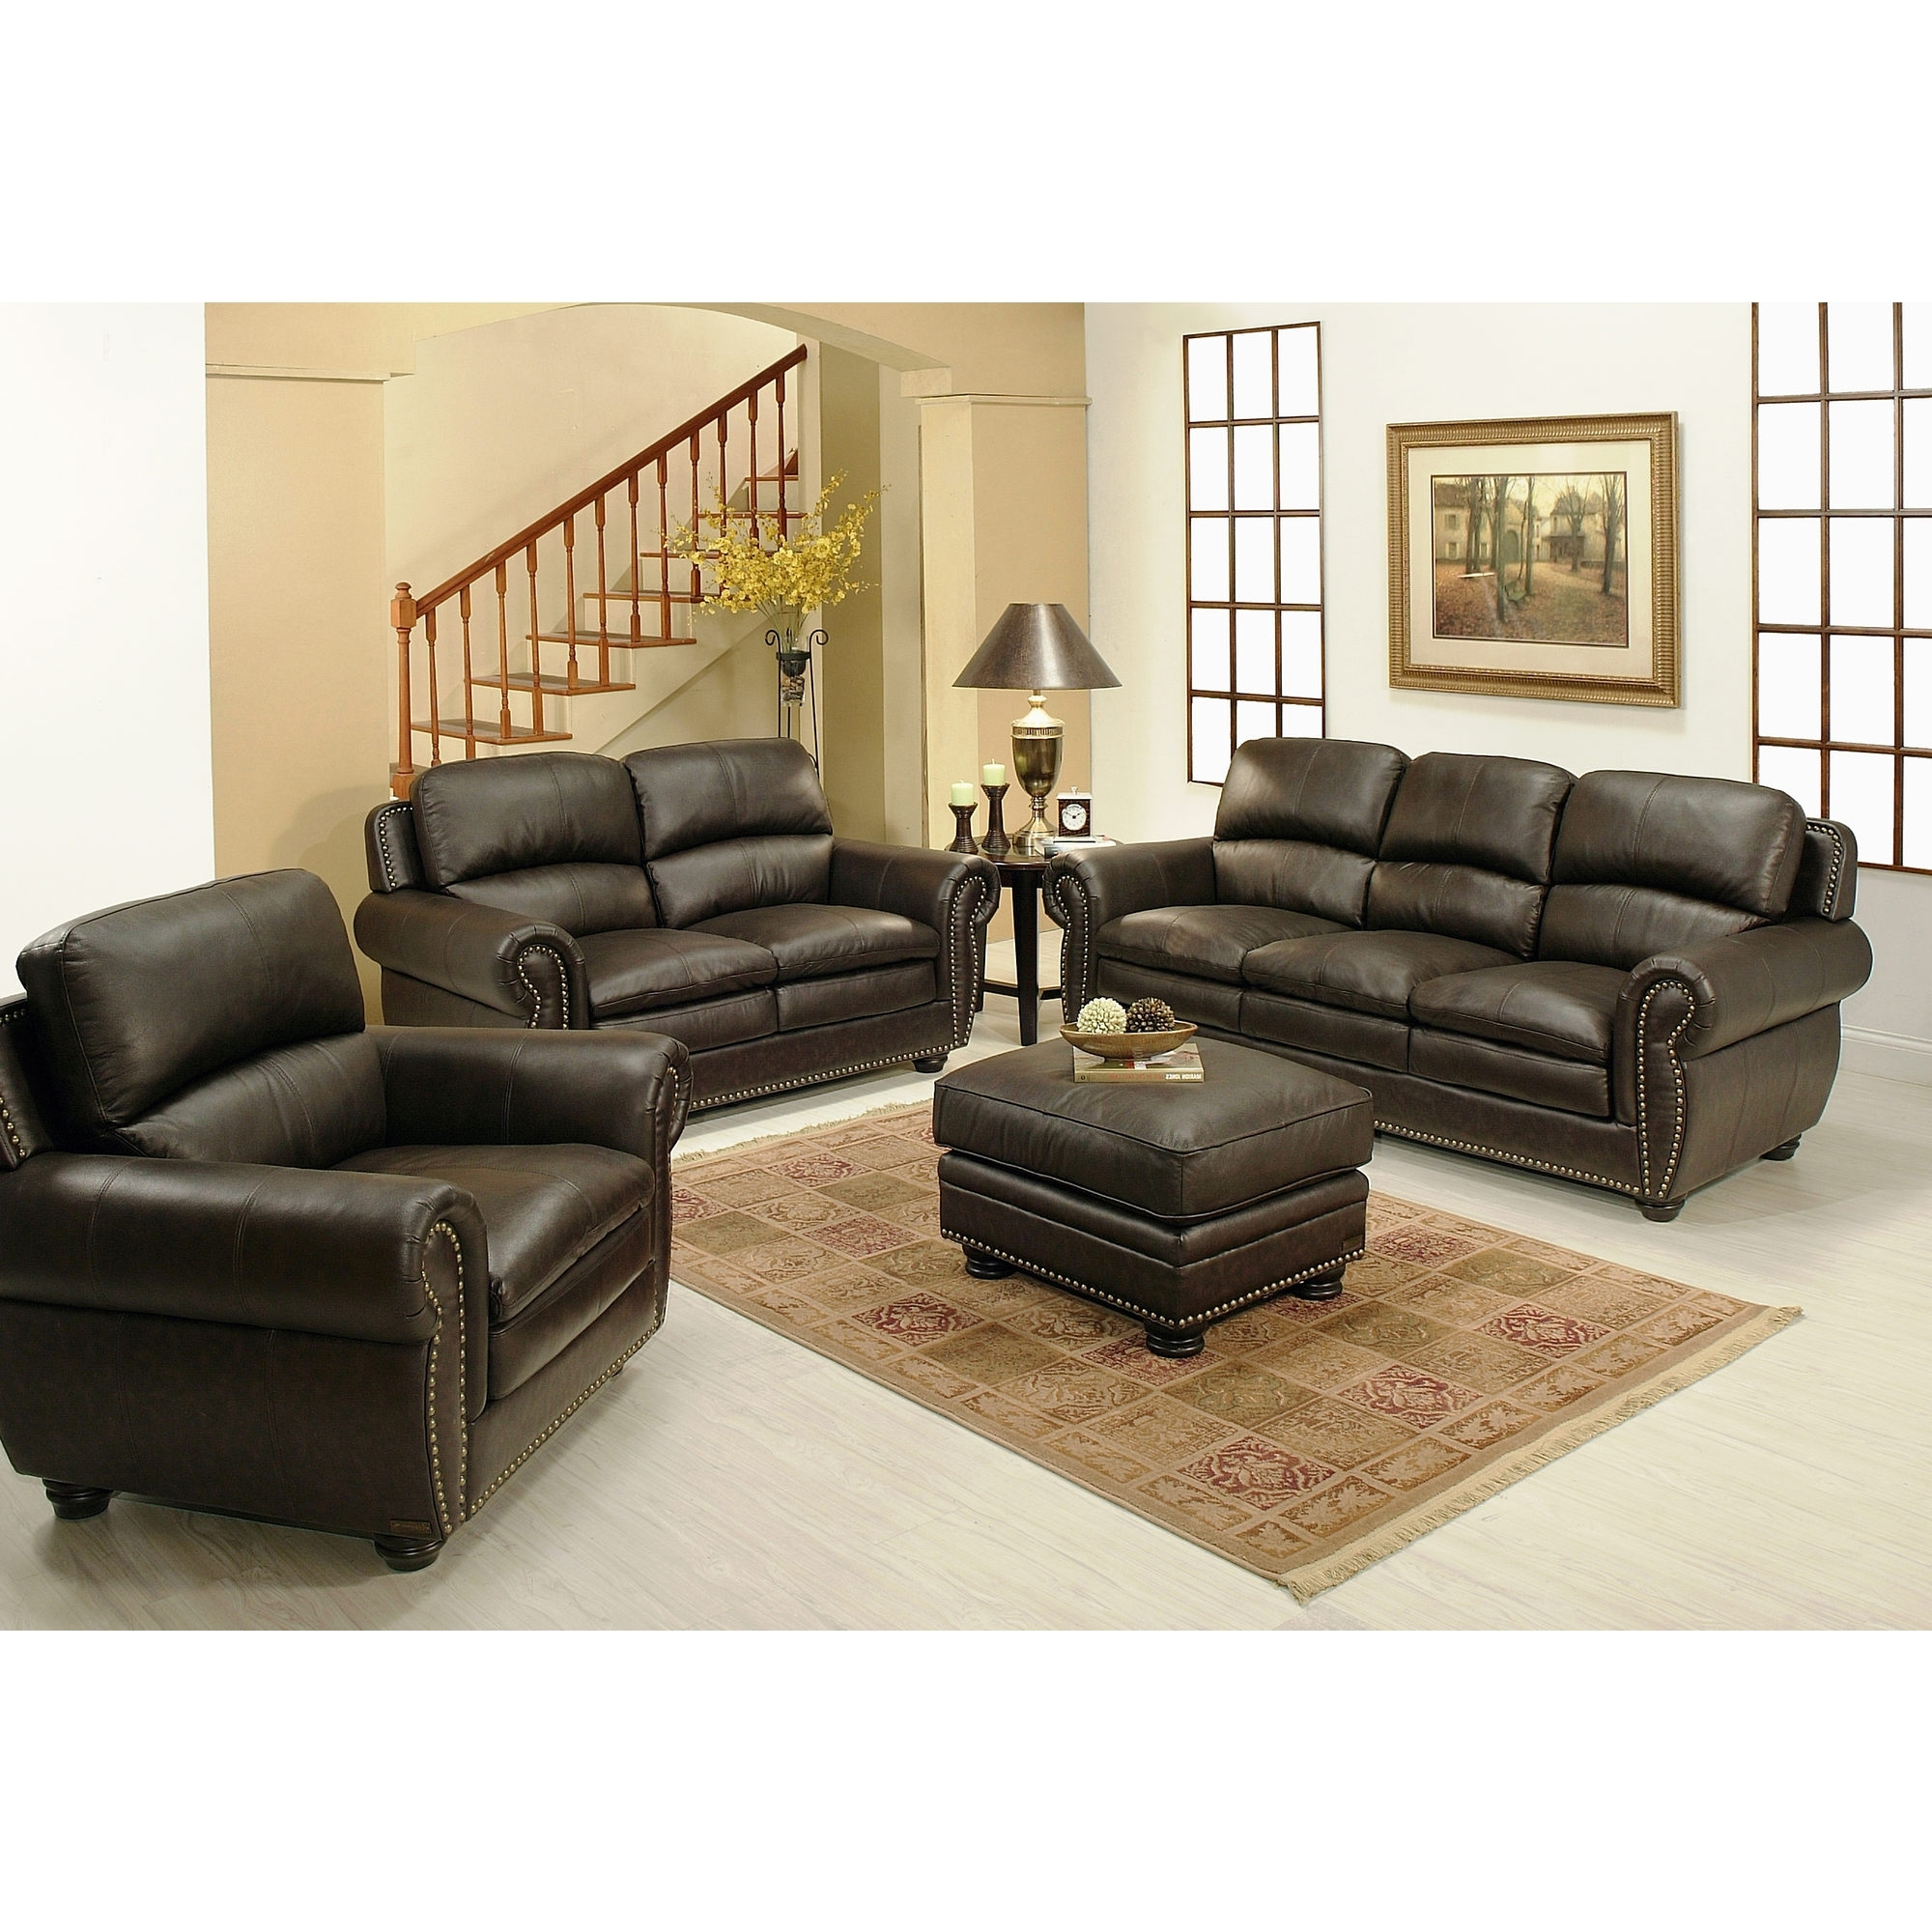 Genuine Leather Sectionals With Chaise Intended For Well Liked Furniture: Stunning Home Furniture With Cool Costco Leather (View 15 of 15)